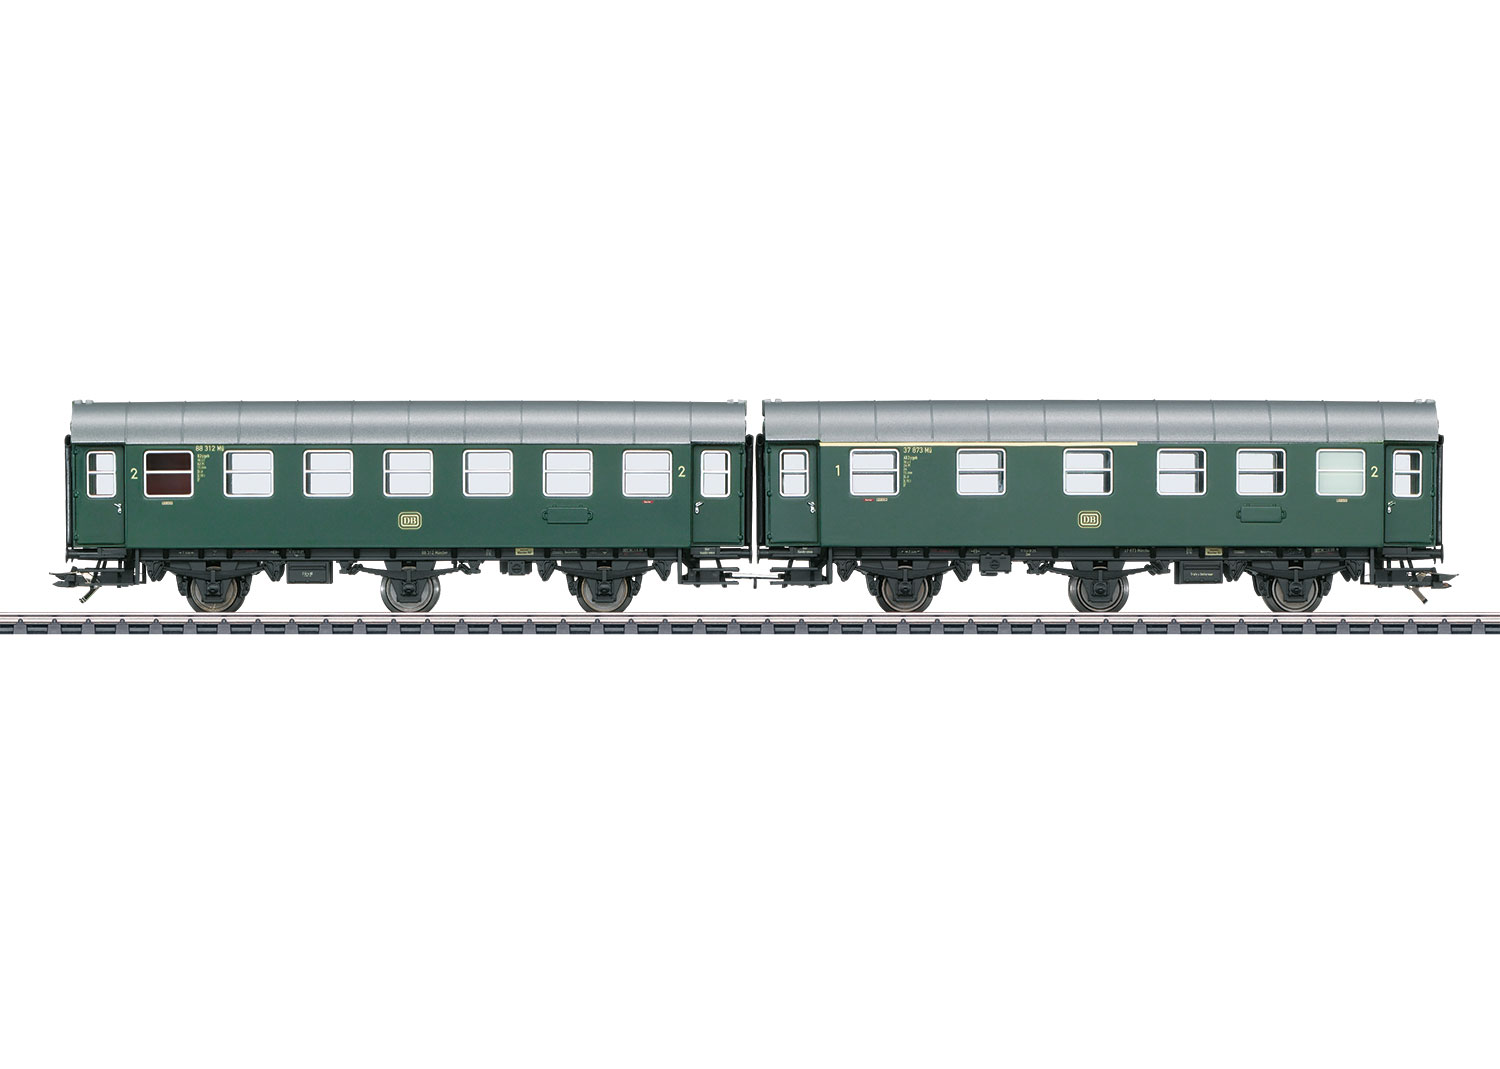 Pair of Passenger Cars, Type AB3ygeb with Type B3ygeb